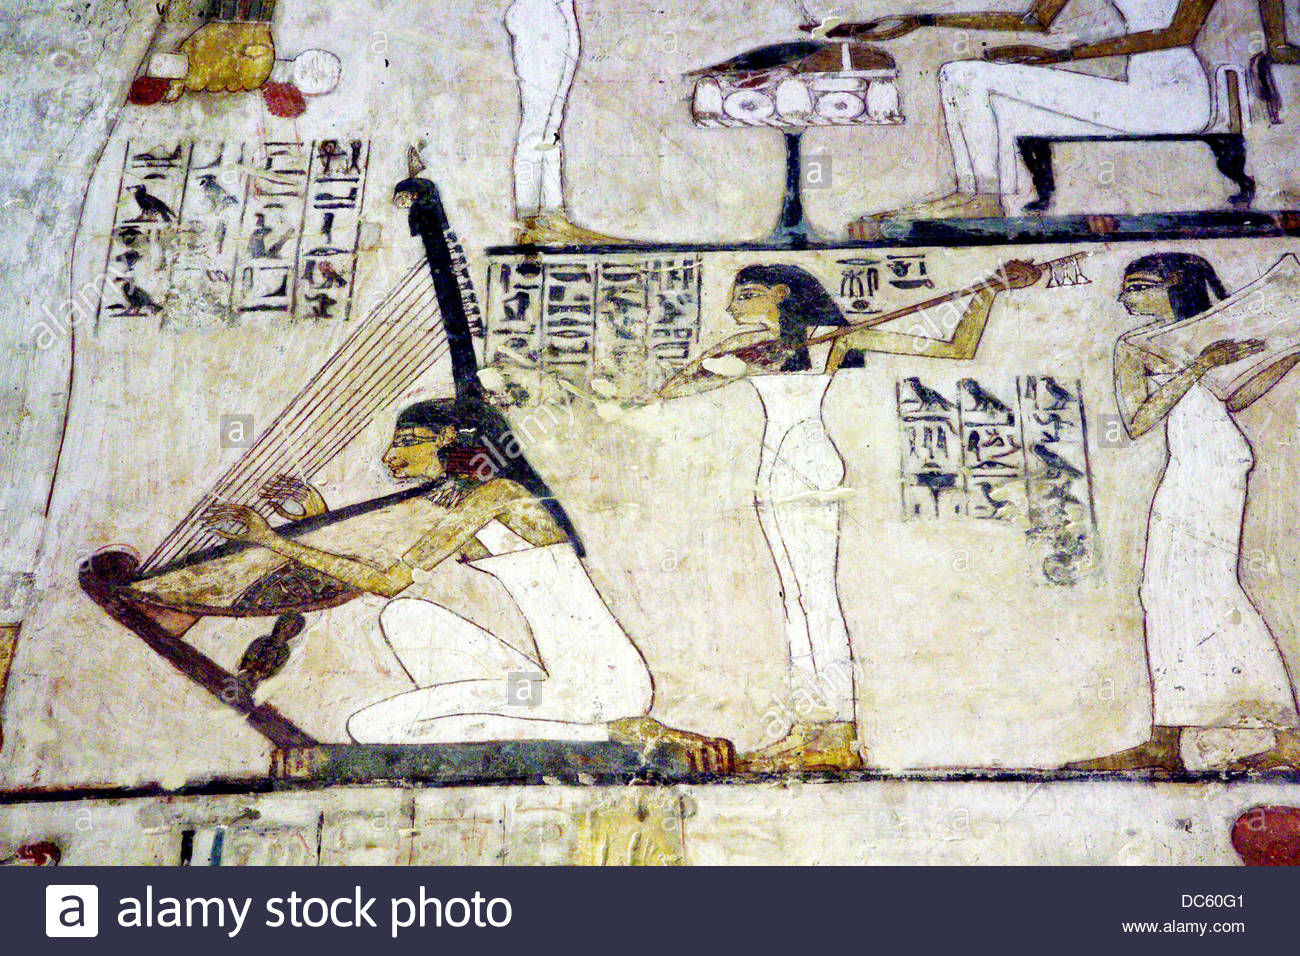 Tombs of the Nobles Luxor, Decoration detail: tomb of Rekhmire, tombs of the Nobles, Luxor ...